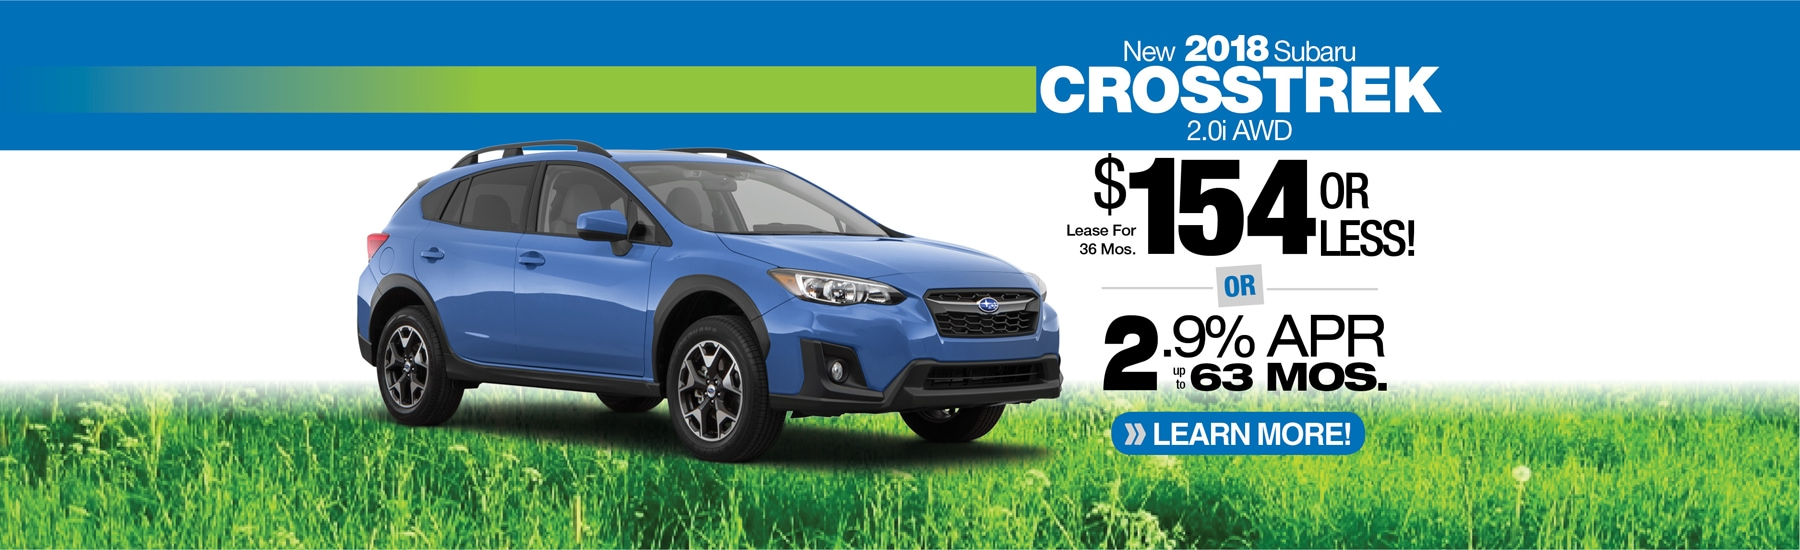 Used Subaru Cars For Sale In Ct